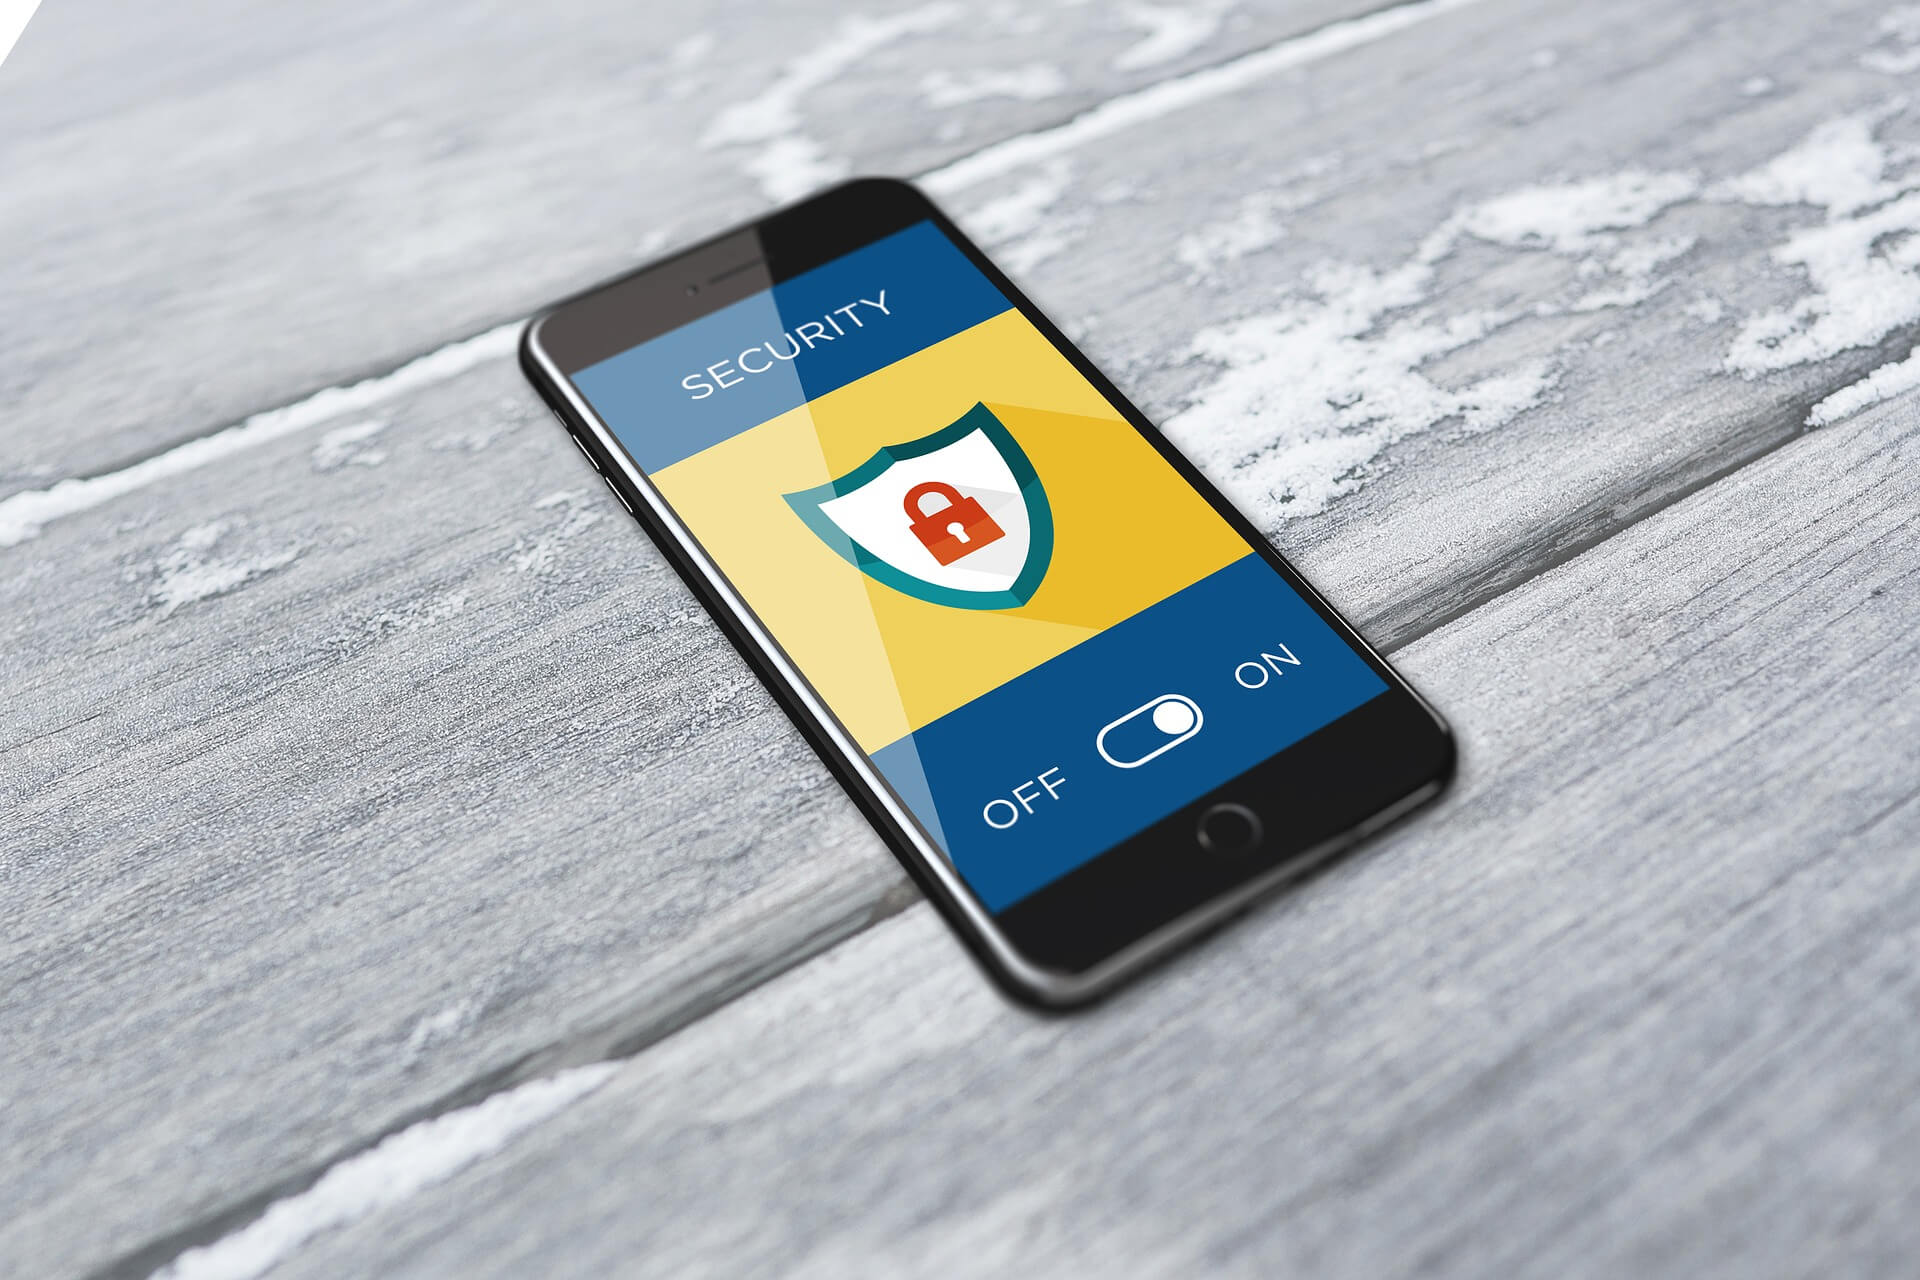 Data security in your devices